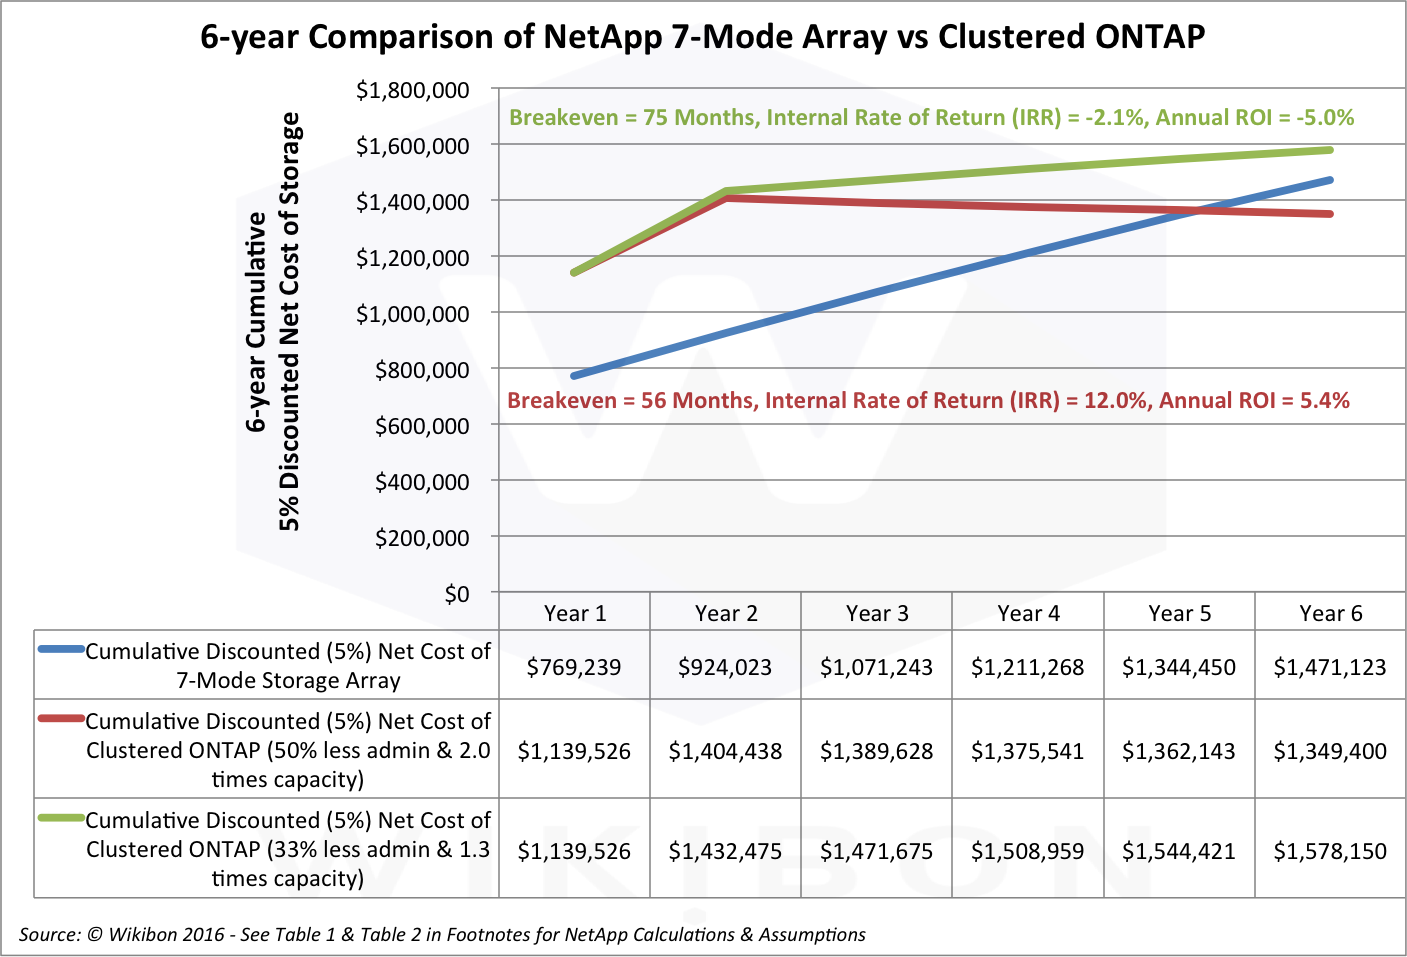 Figure 1: 6-year Comparison of NetApp 7-Mode vs. Clustered ONTAP with High & Lower Levels of Benefit Source: © Wikibon 2016See Table 1 and Table 2 in the Footnotes below for detailed assumptions and calculations